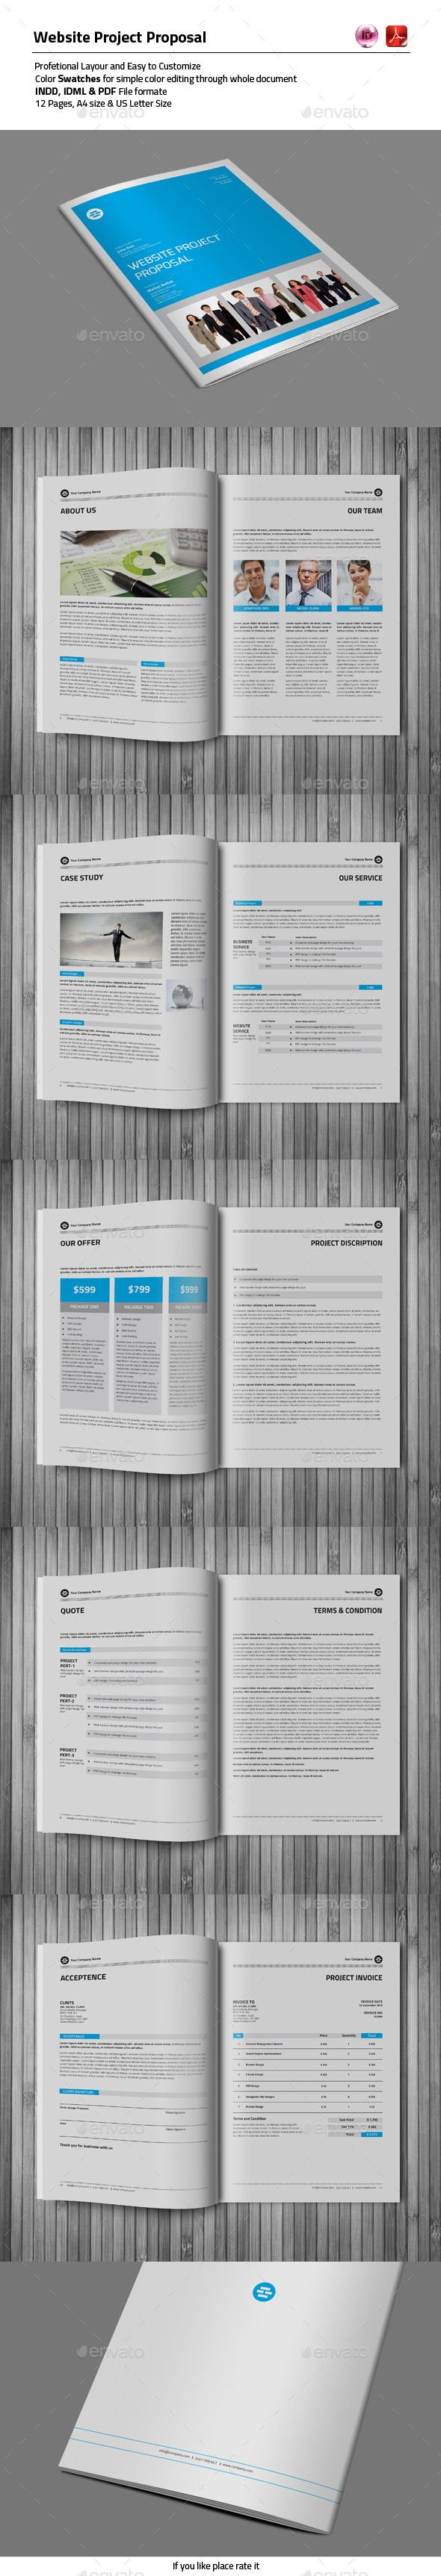 12 Pages Proposal Template 12 Pages Proposal